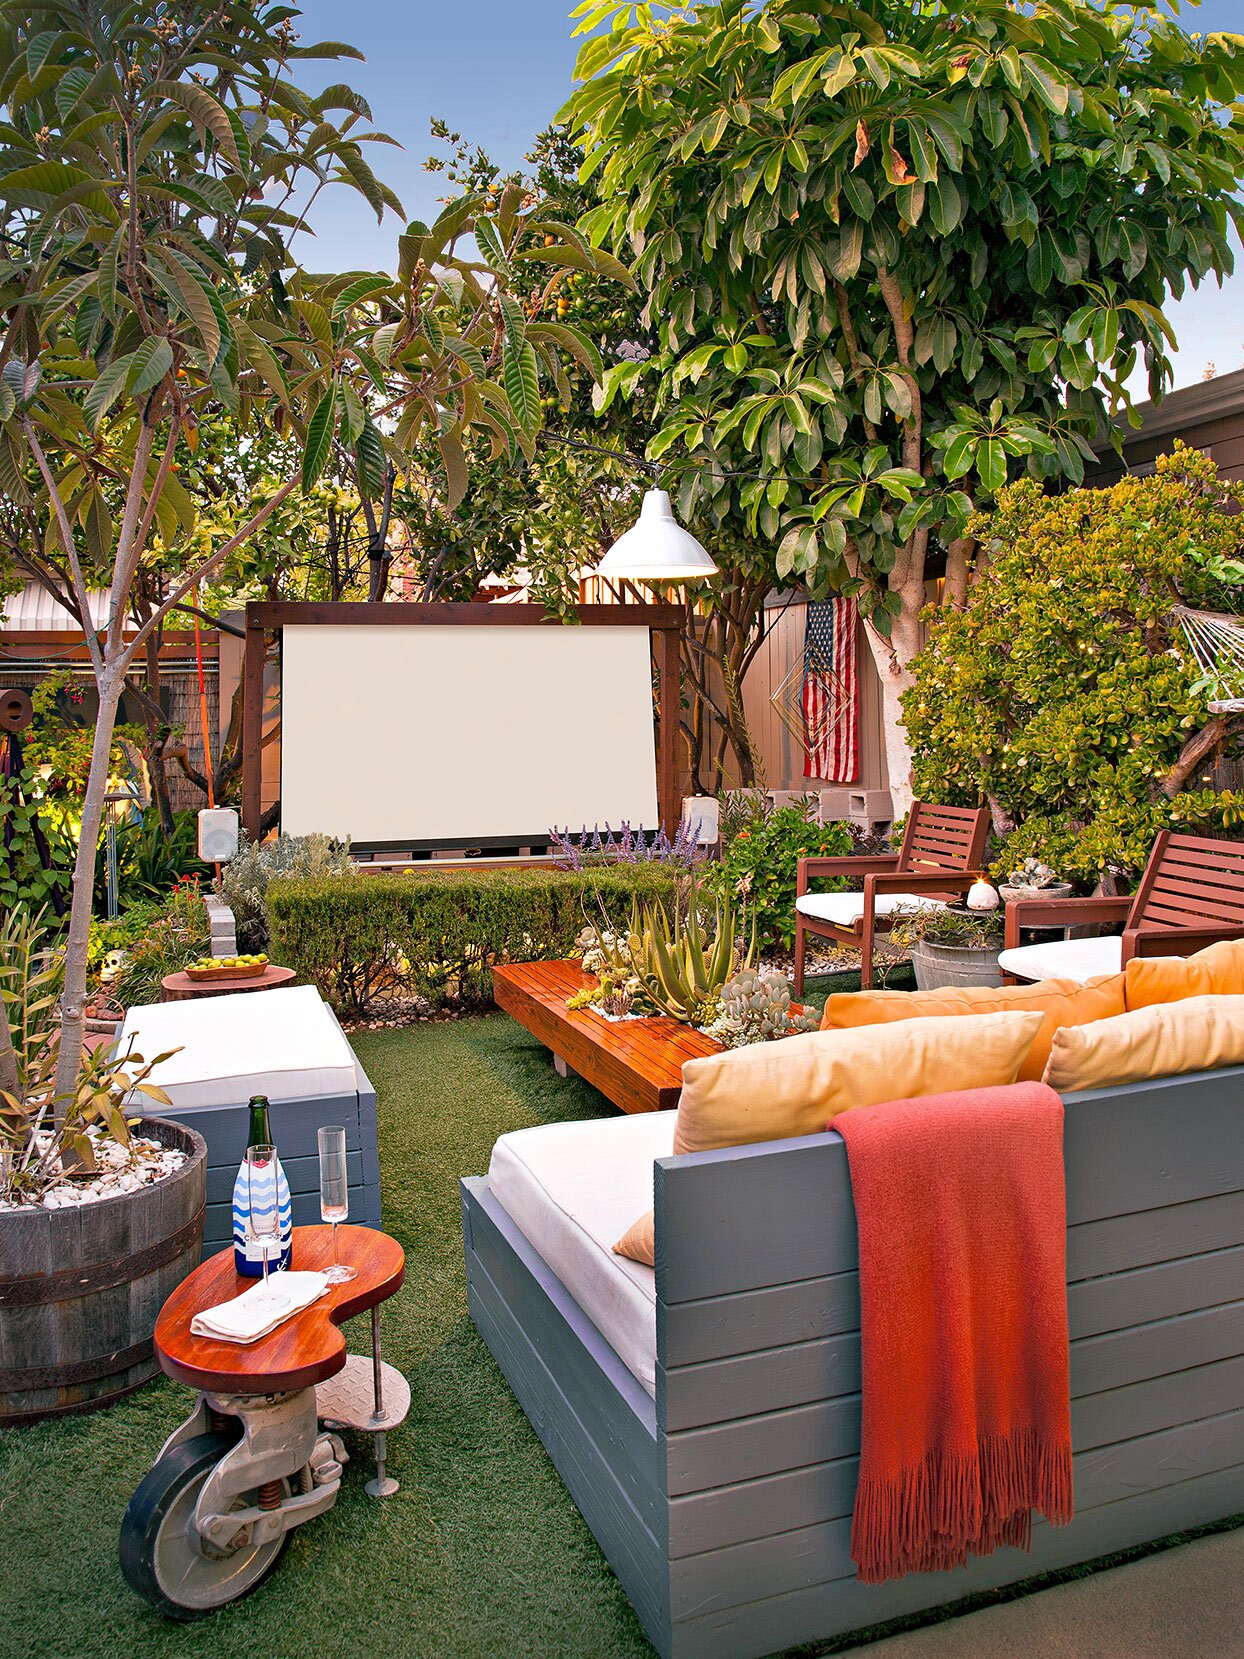 projector screen outdoor movie night tropical backyard oasis furniture